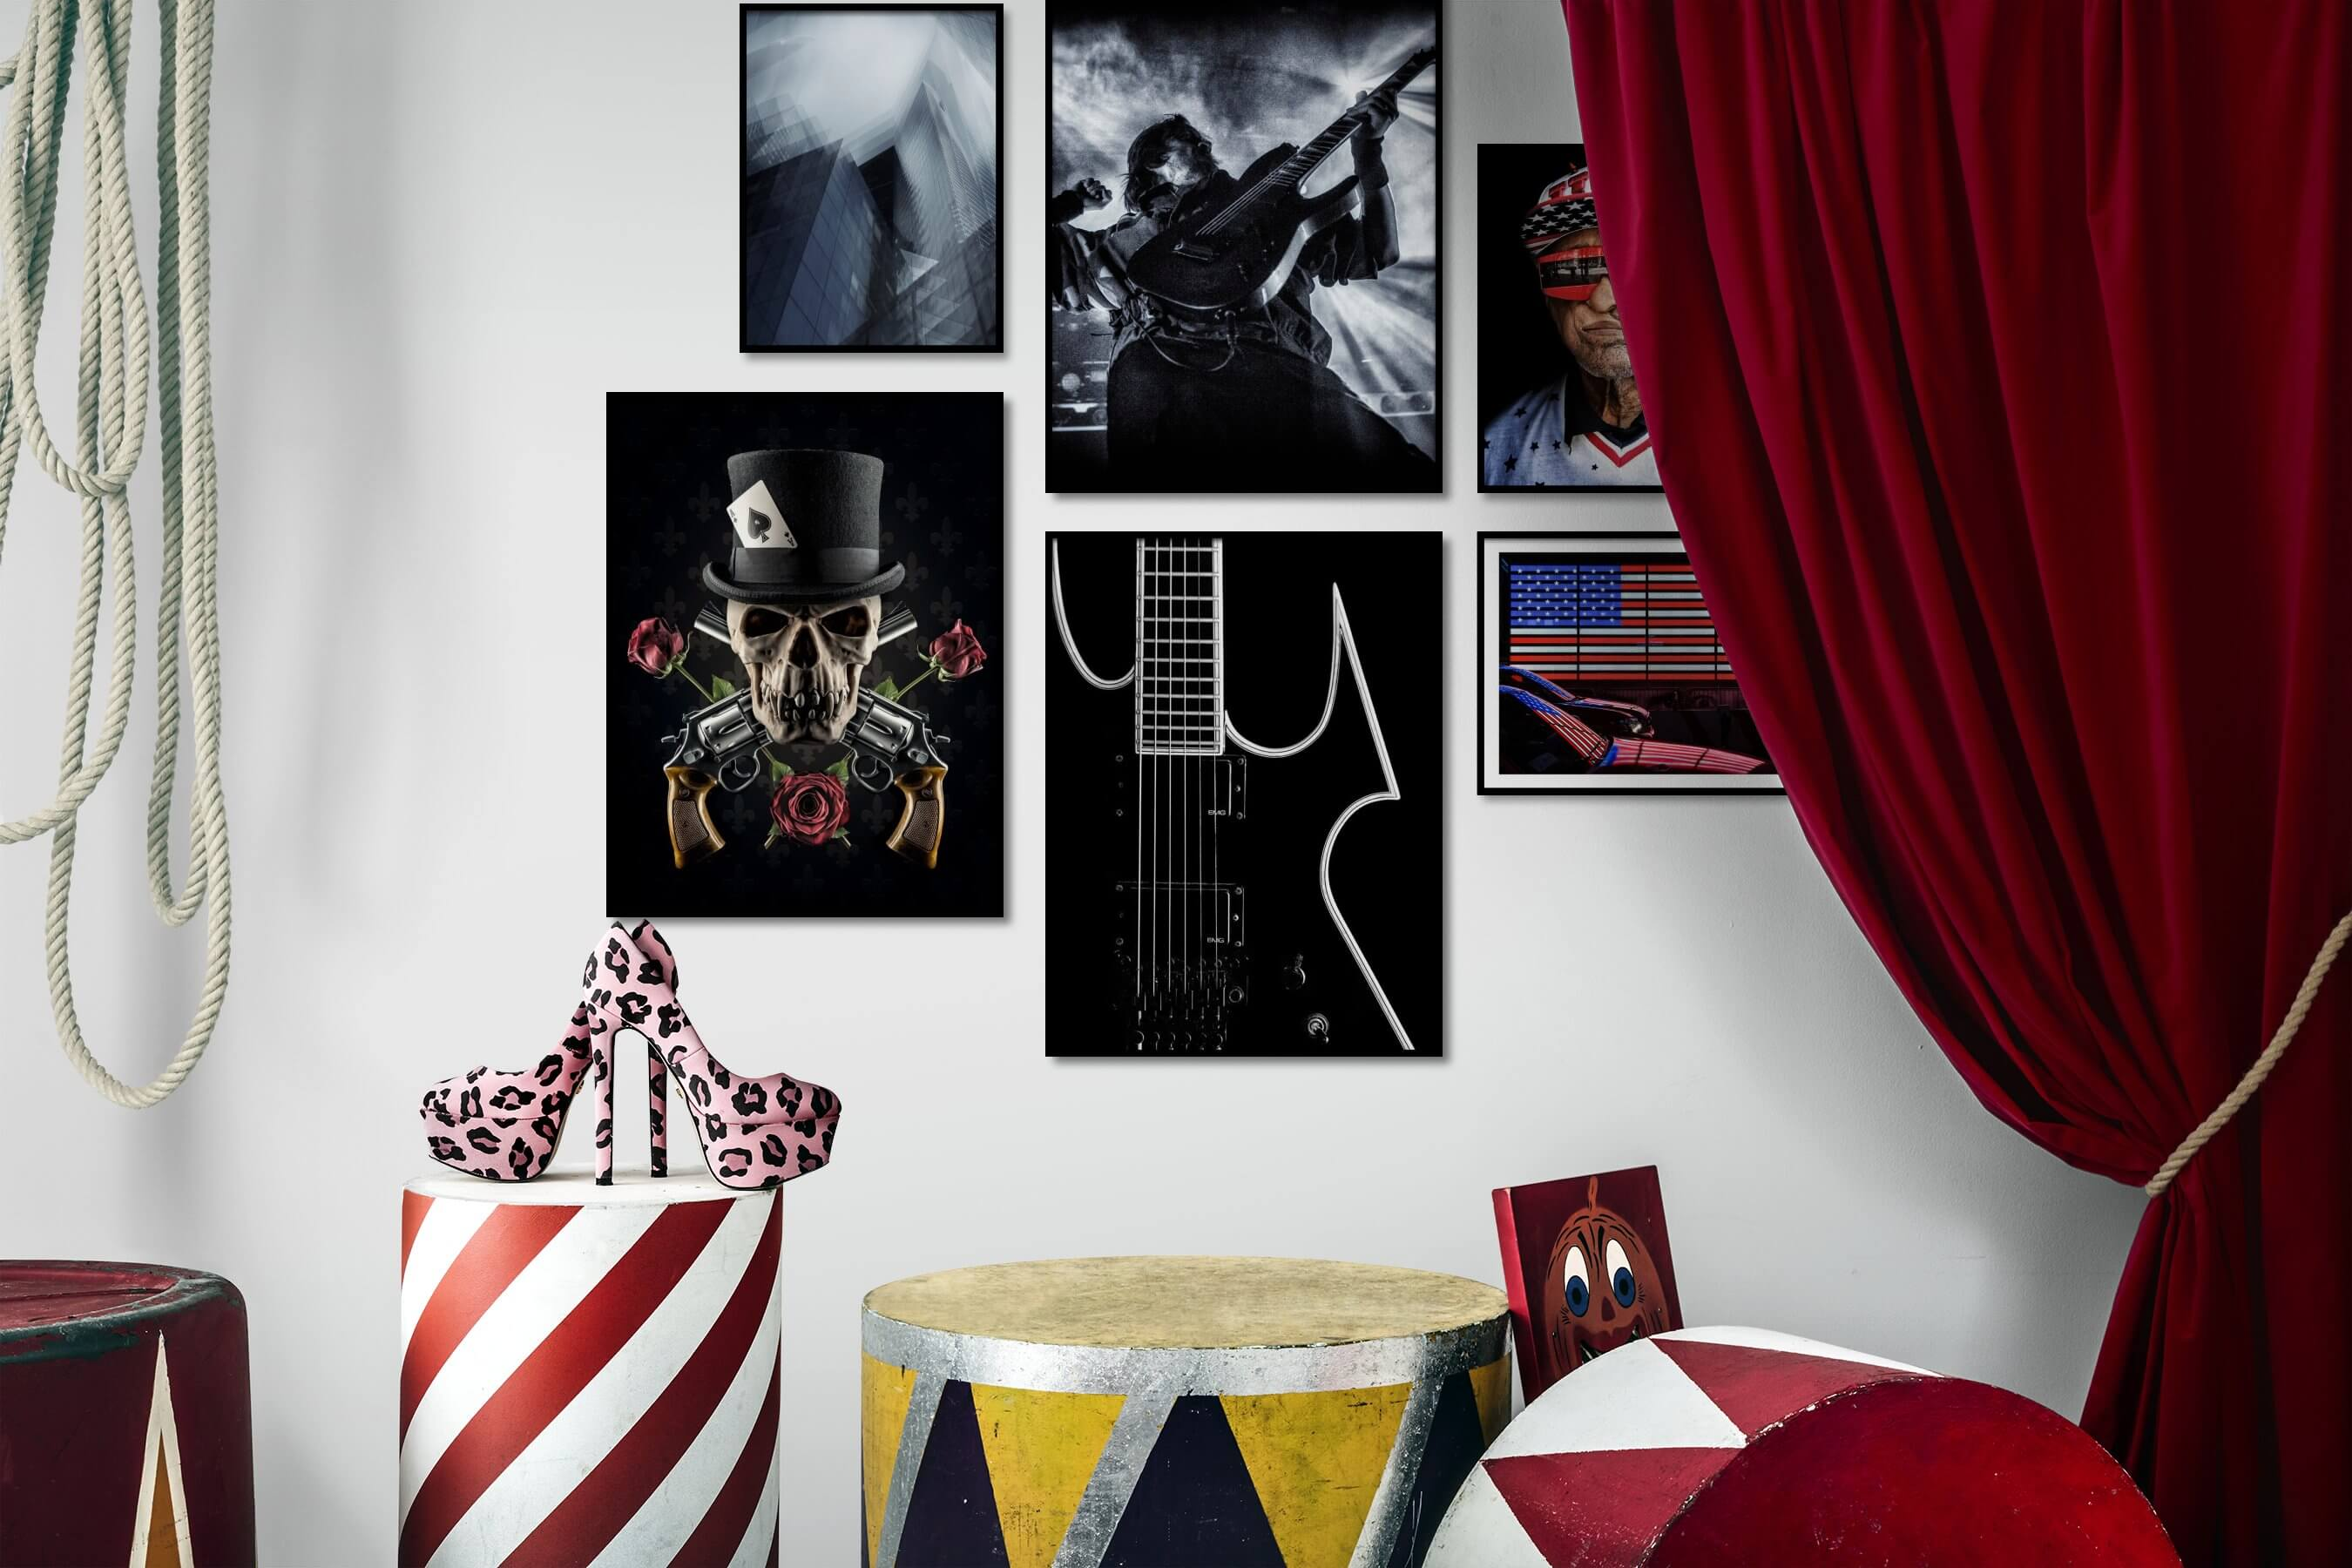 Gallery wall idea with six framed pictures arranged on a wall depicting For the Maximalist, City Life, Fashion & Beauty, Black & White, Artsy, Dark Tones, Flowers & Plants, Vintage, For the Moderate, Americana, and Colorful